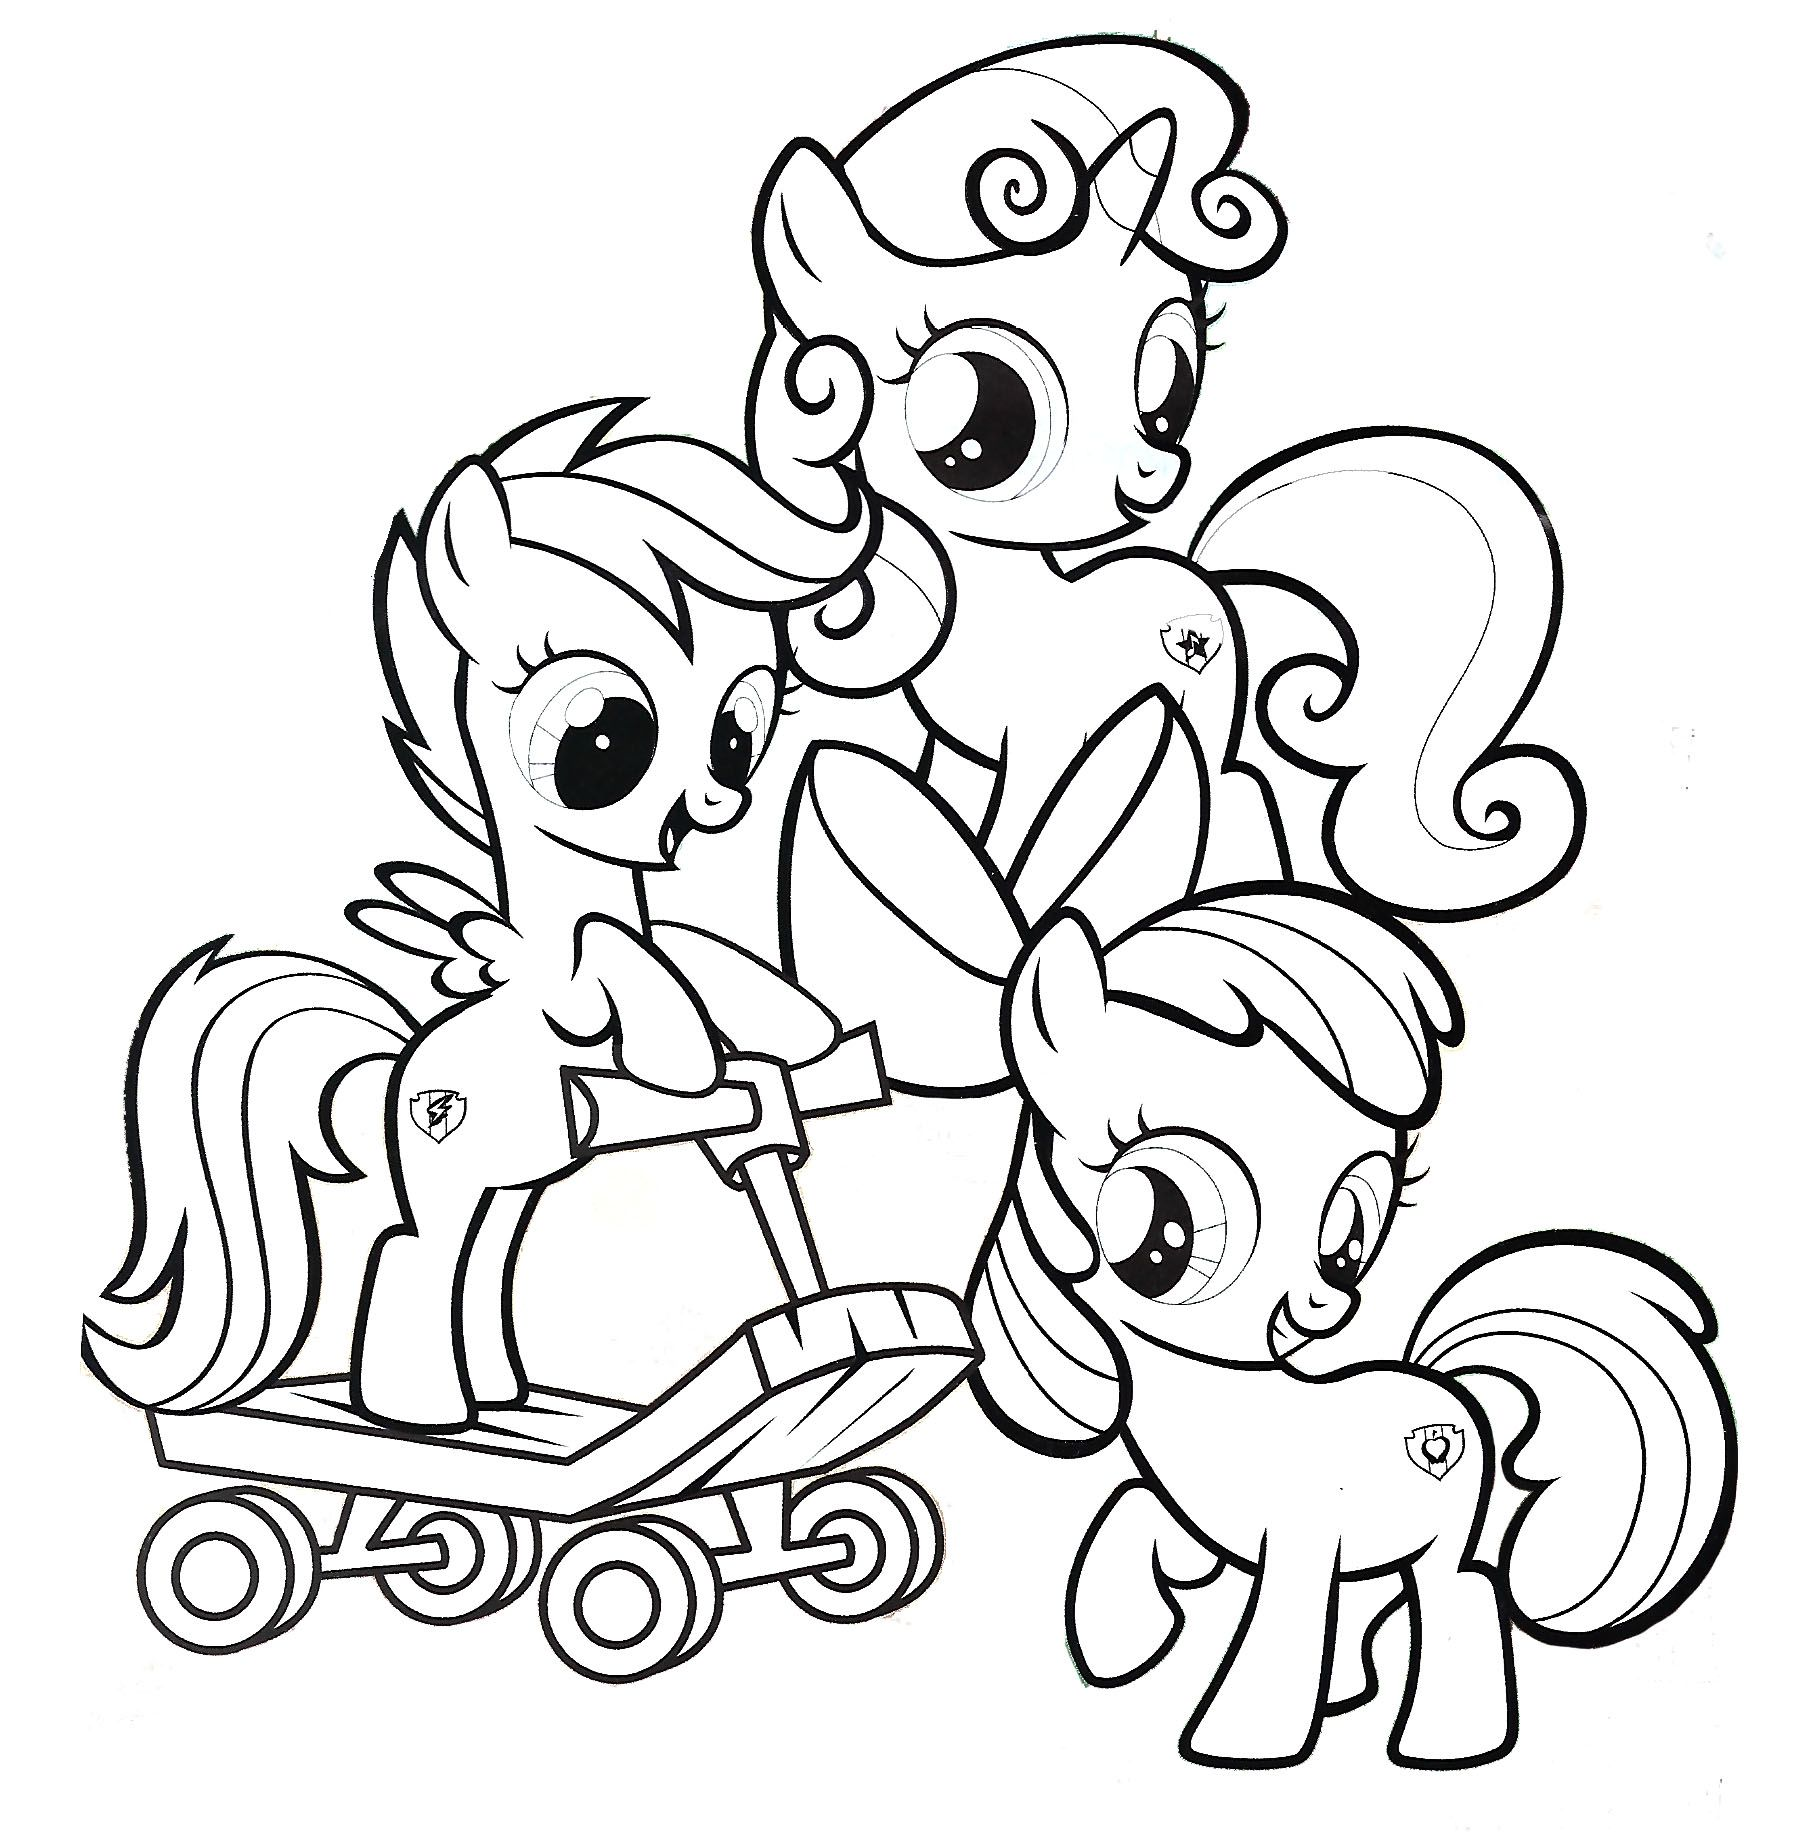 Cutie Mark Crusaders My Little Pony Coloring Page Horse